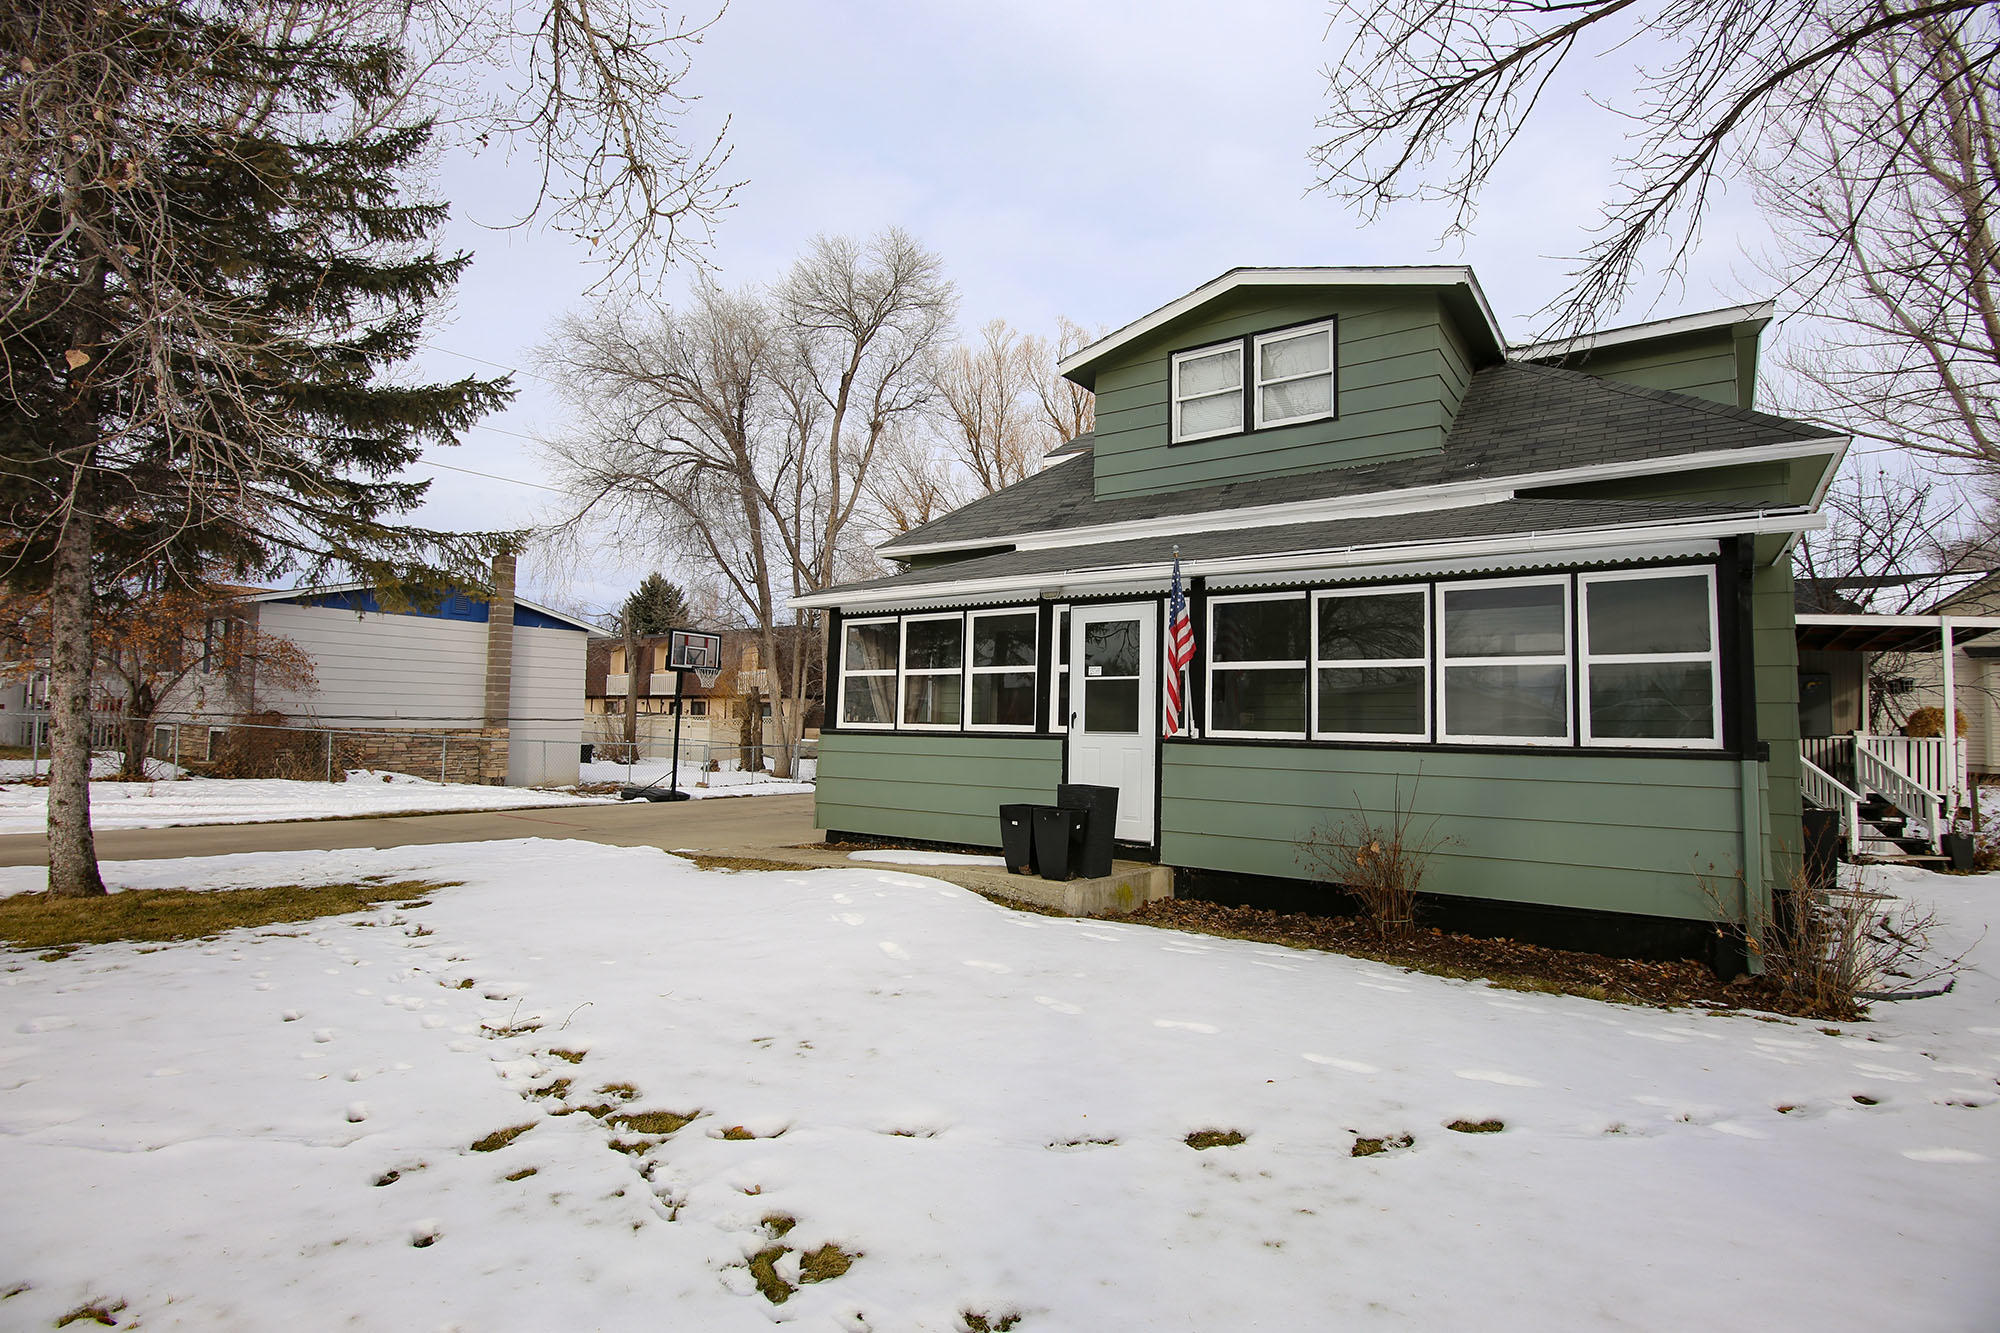 911 11th Street, Sheridan, Wyoming 82801, 4 Bedrooms Bedrooms, ,1.5 BathroomsBathrooms,Residential,For Sale,11th,19-42